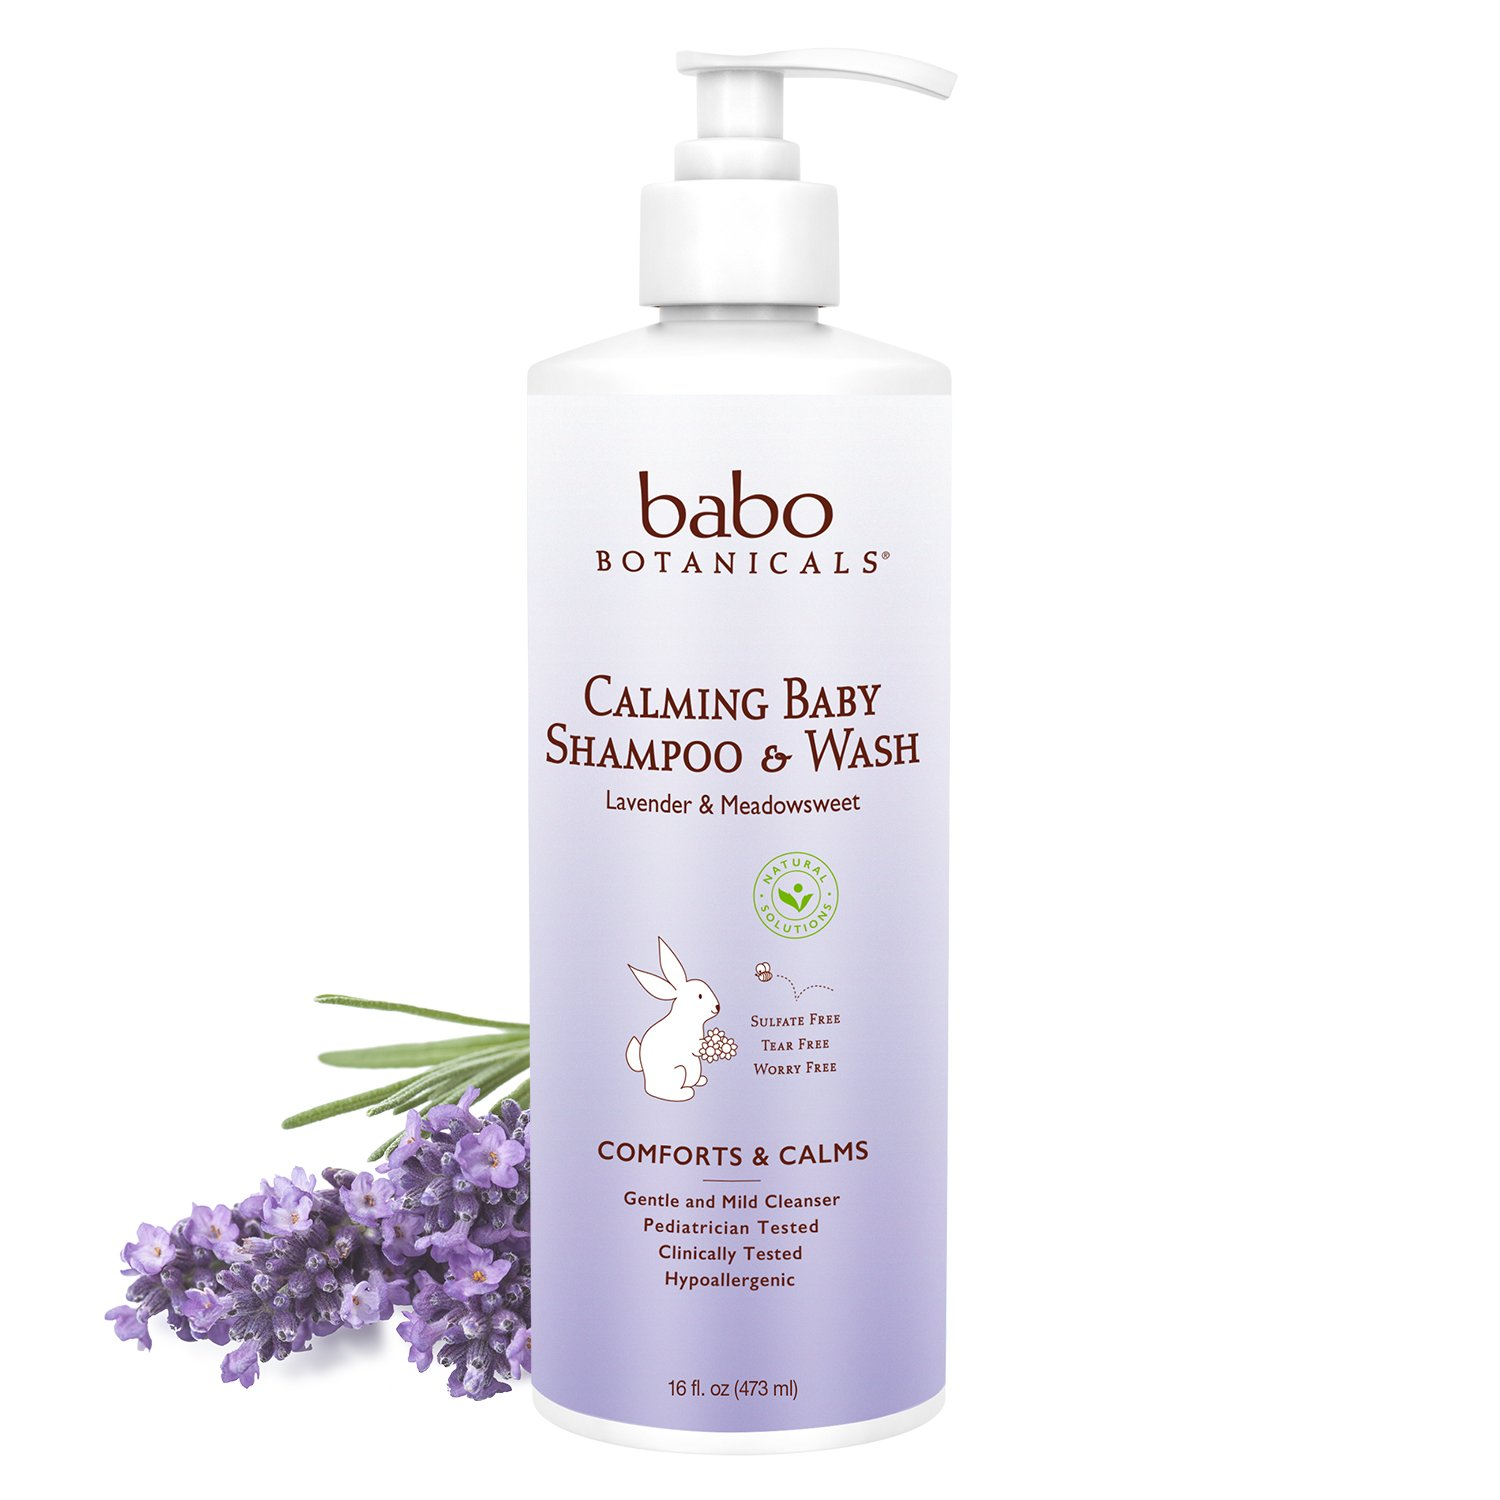 Babo Botanicals Calming 2-in-1 Shampoo & Wash with French Lavender and Organic Meadowsweet, Hypoallergenic, Vegan, for…